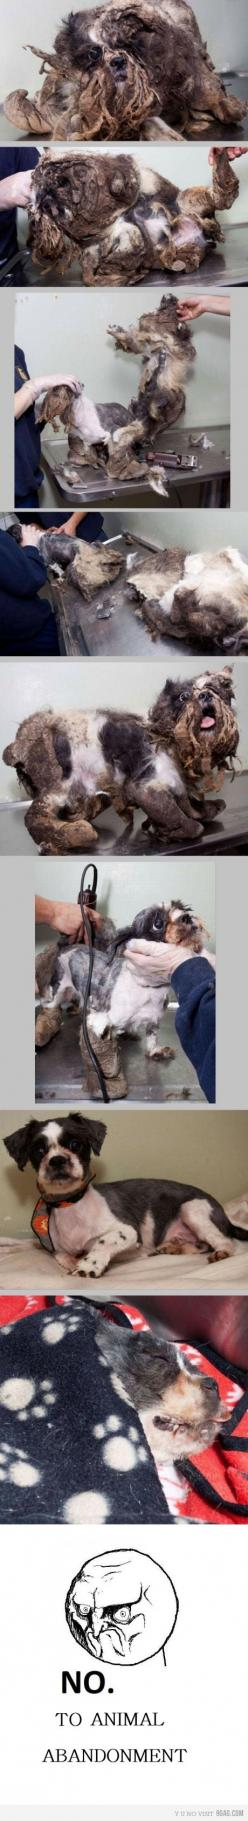 Animal abuse. Don't walk by an animal in need because YOU think they are beyond help. Share compassion. Be kind! Please Share! ❤️: Doggie ́S, Animal Rights, Animal Cruelty, Pet, Animal Abuse, First Haircut, Animal Abandonment, Poor Baby, So Sad